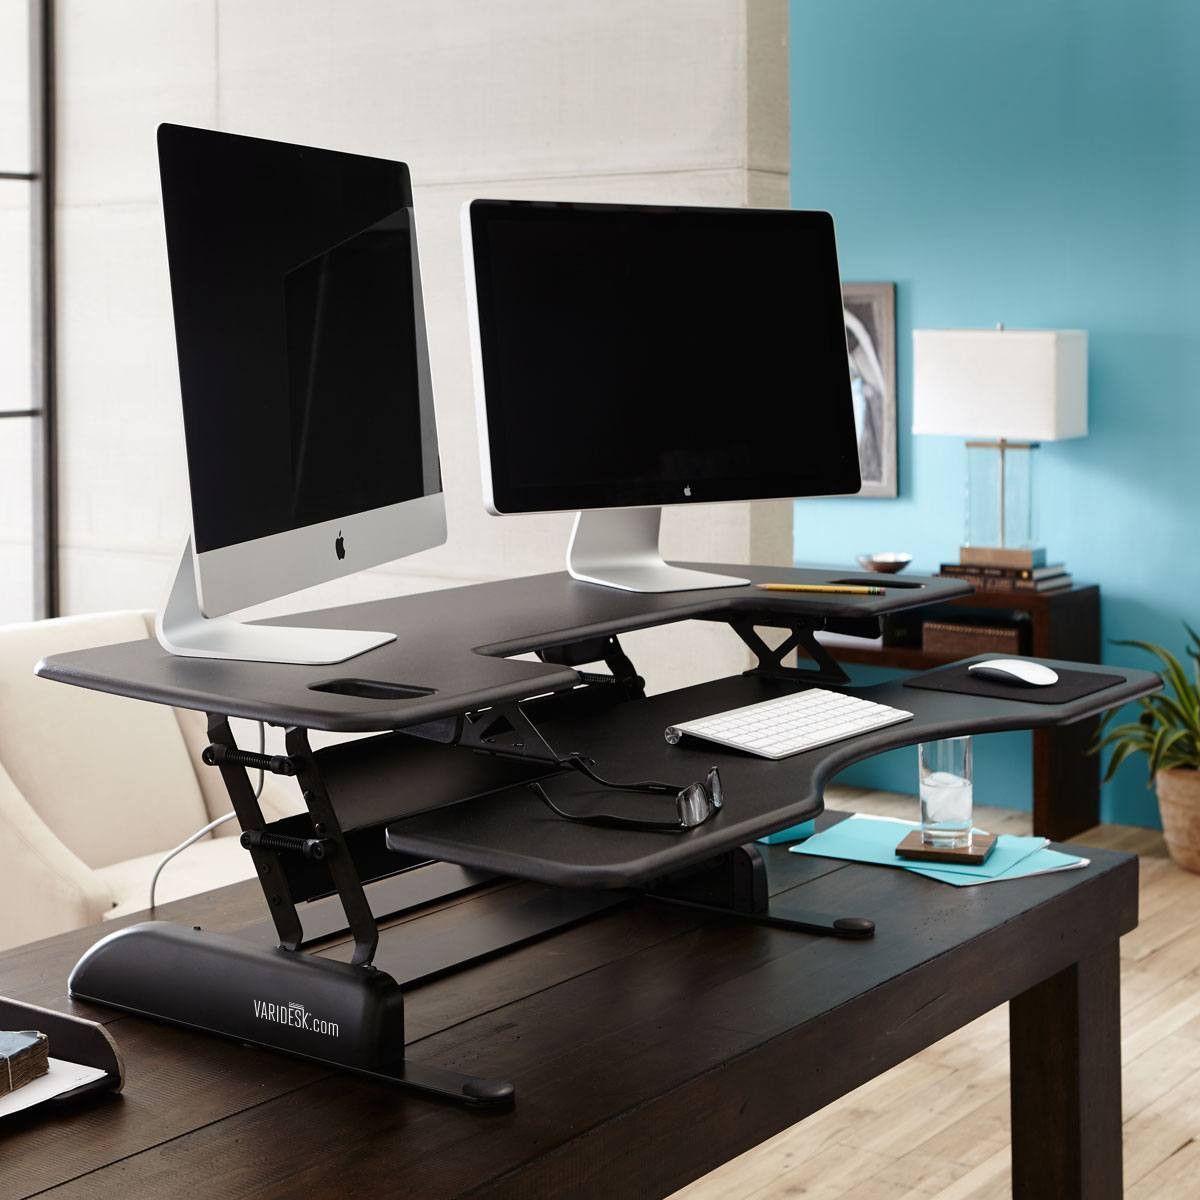 Varidesk exec 40 review varidesk pro desk 60 darkwood review workfit t - The Varidesk Pro Plus 48 Is A Height Adjustable Standing Desk Designed With A Spacious